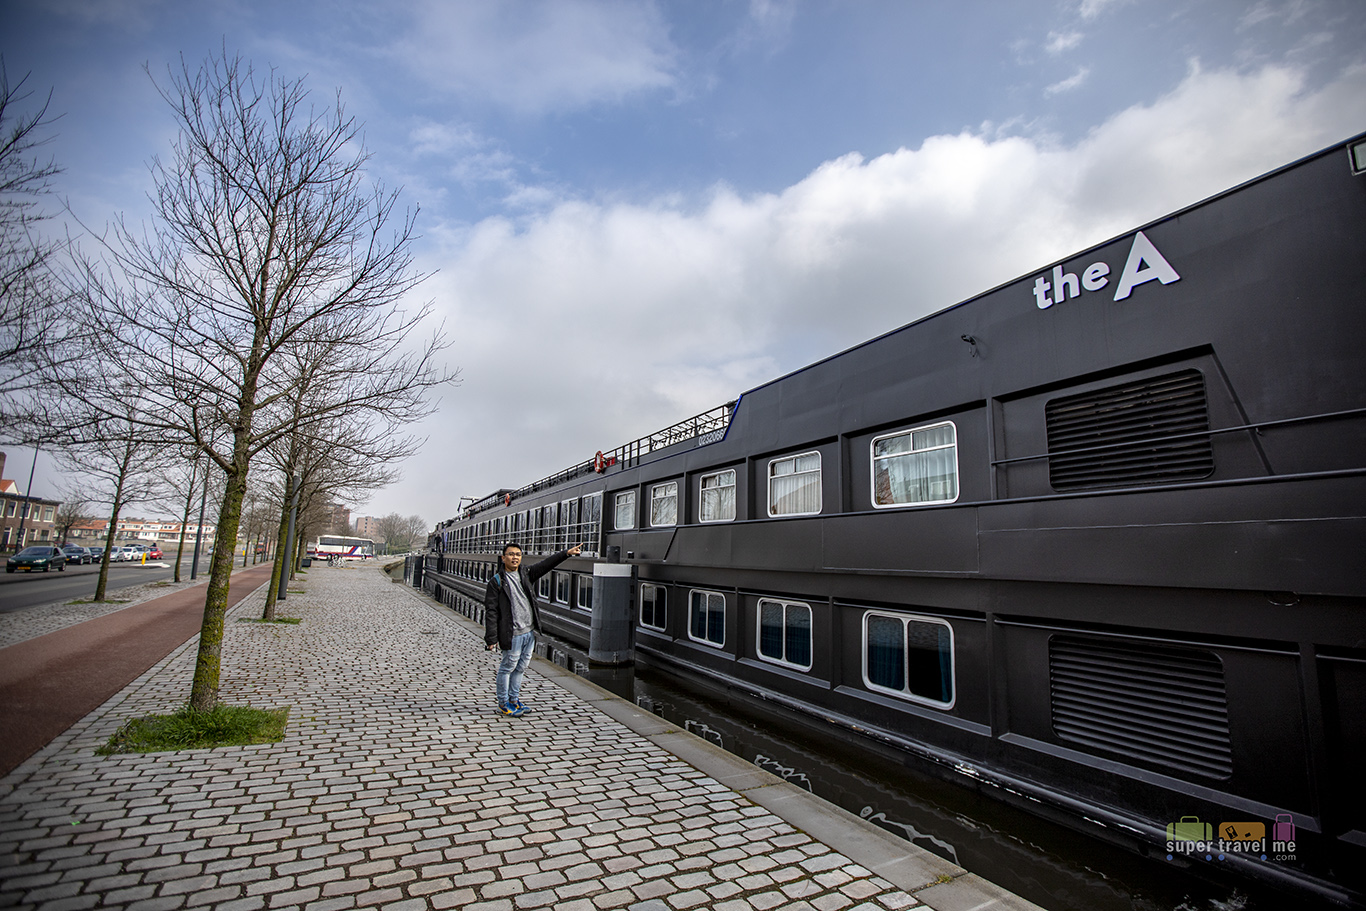 U by Uniworld's The A river cruise ship docked at Haarlem, The Netherlands